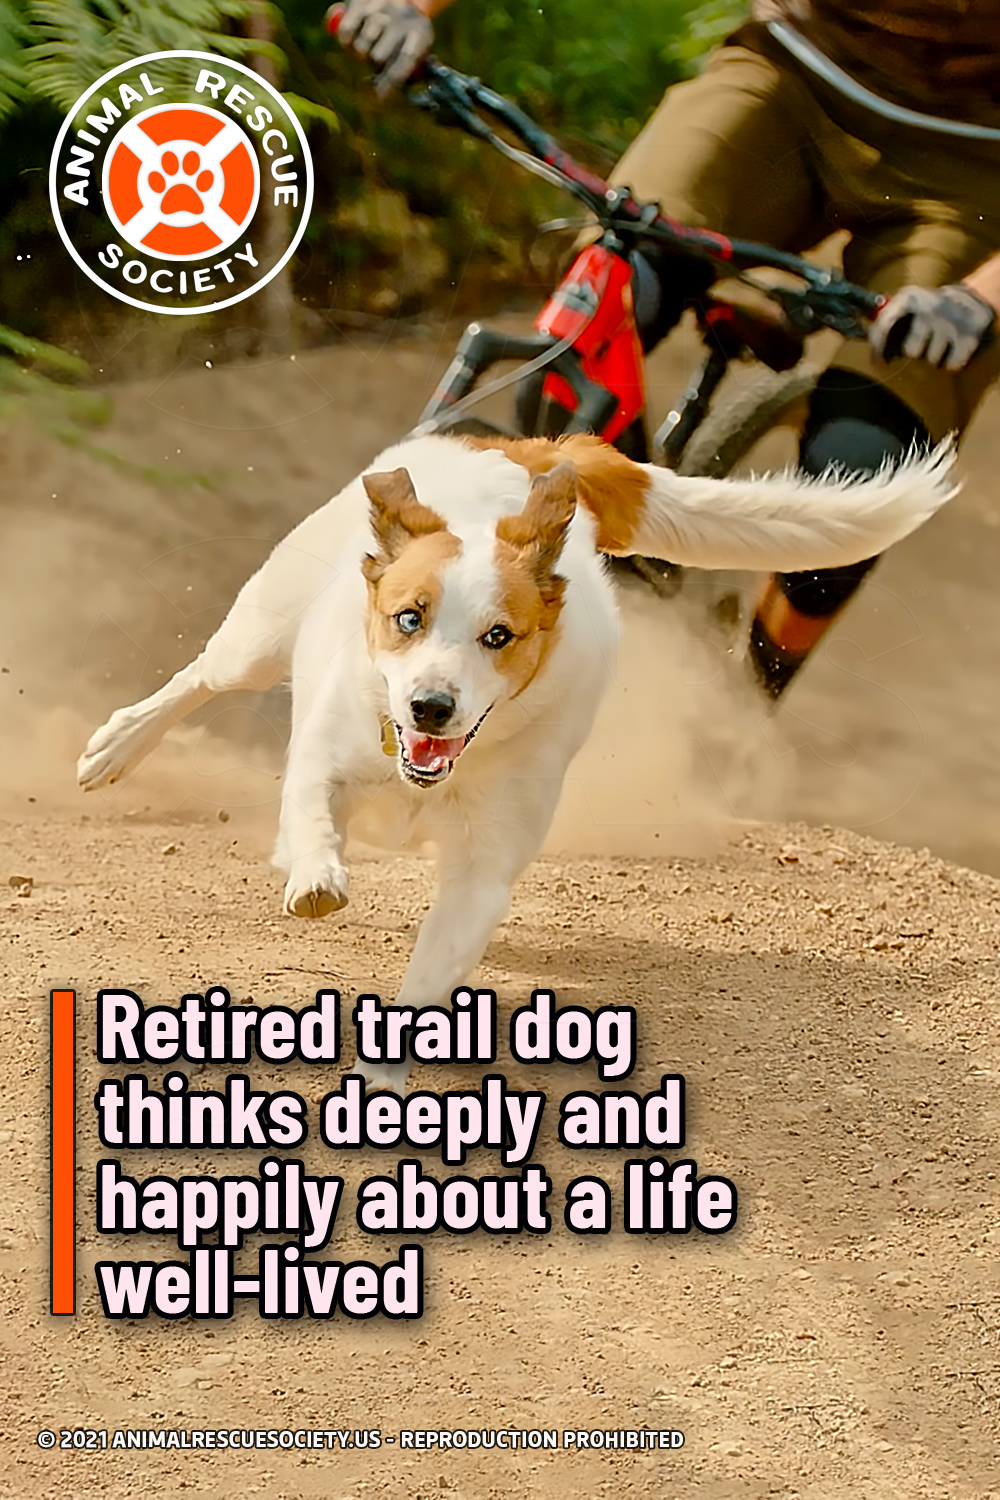 Retired trail dog thinks deeply and happily about a life well-lived